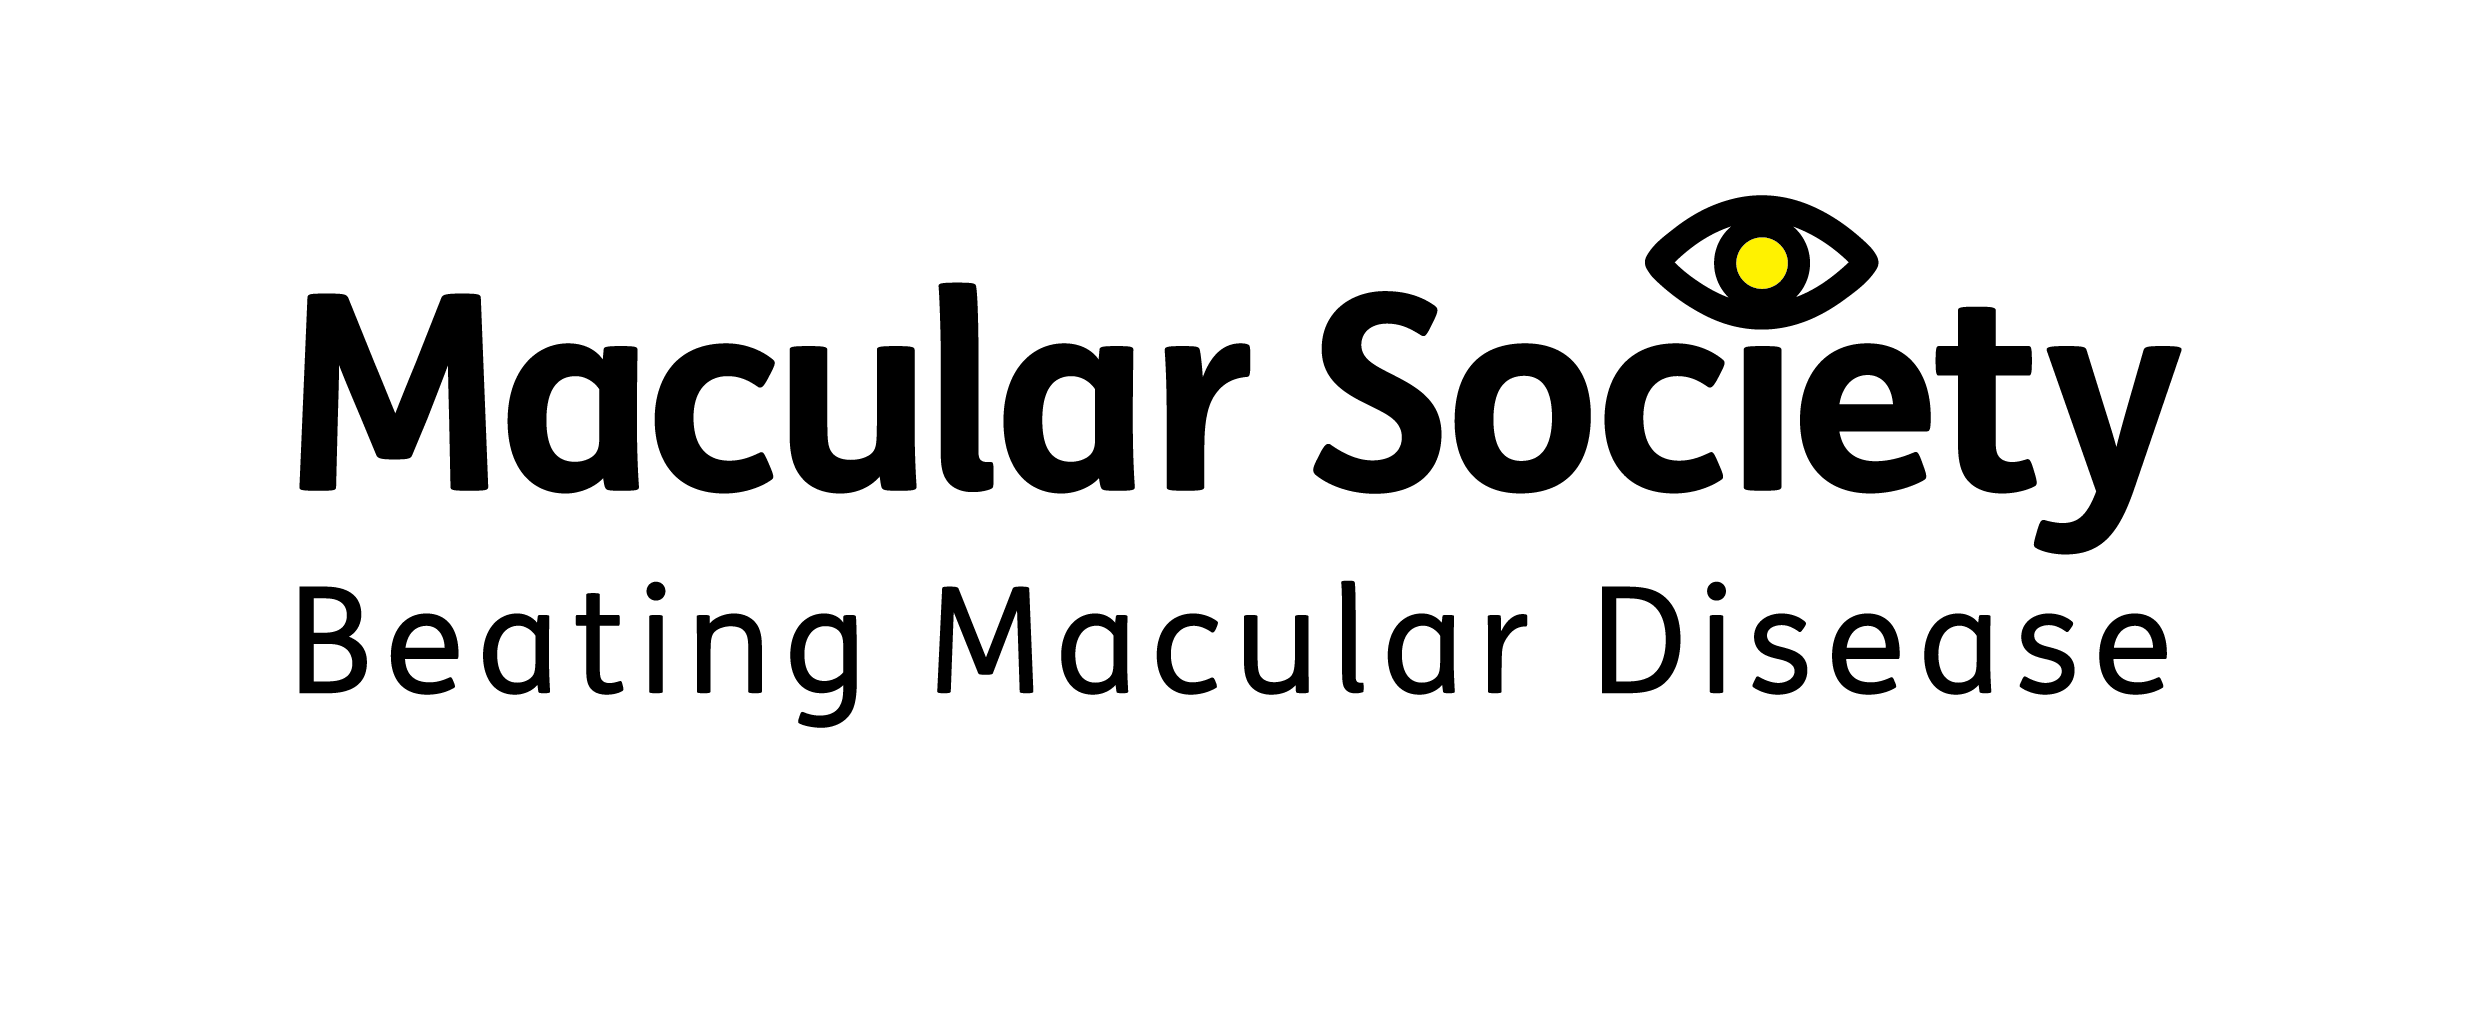 Image is Macular Society logo with strapline Beating Macular Disease